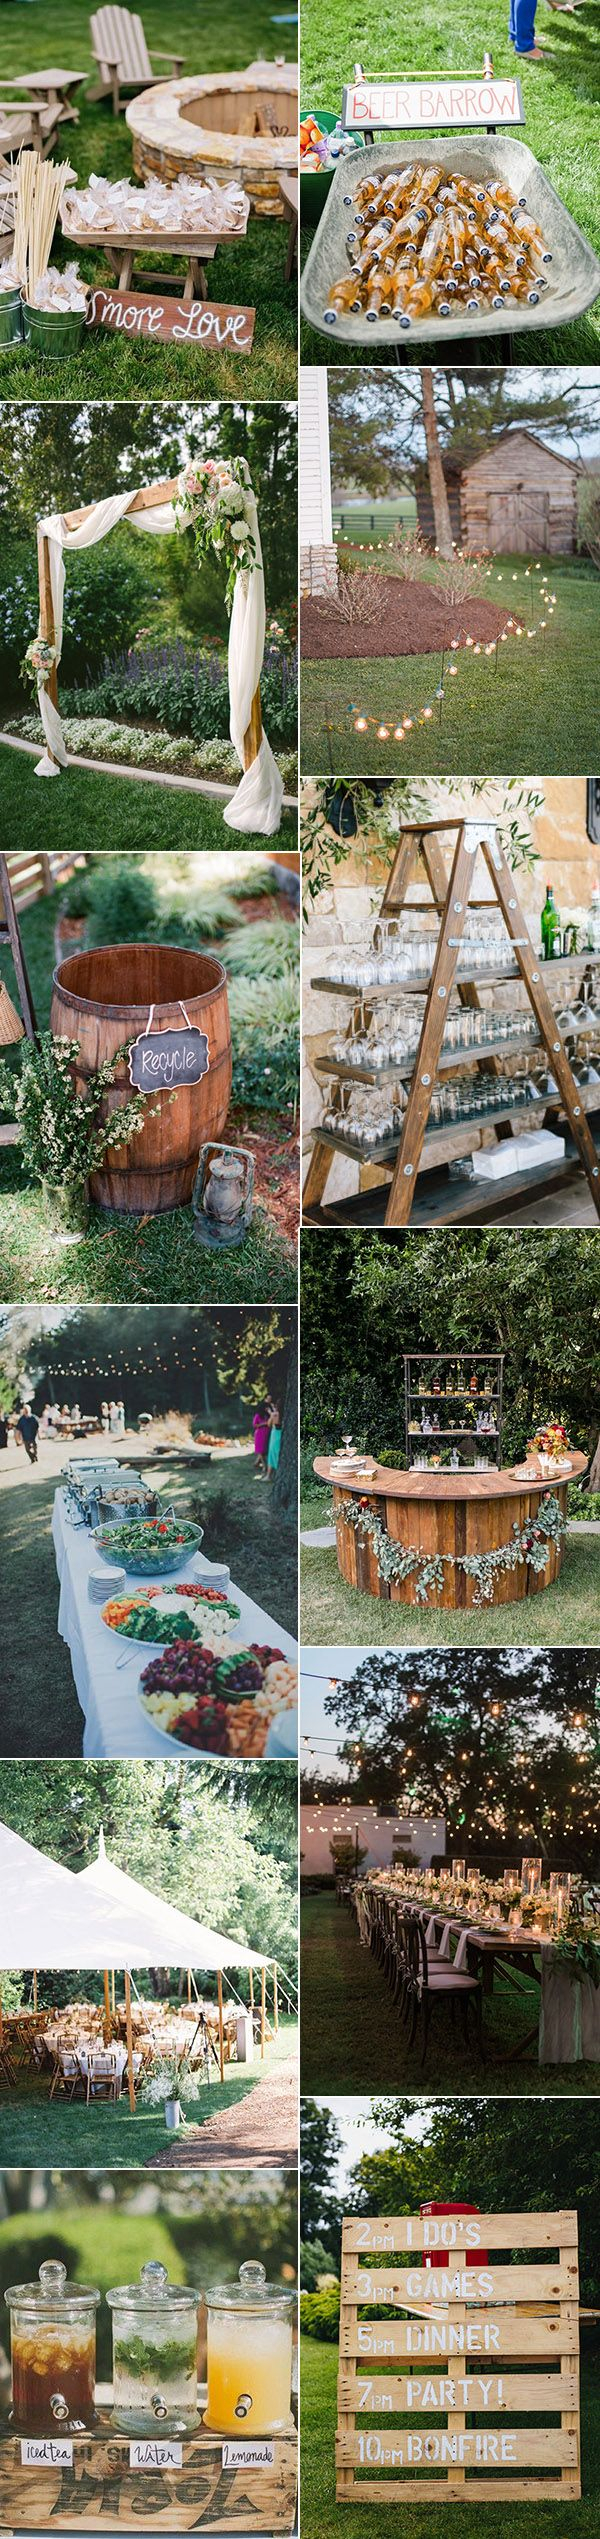 20 Great Backyard Wedding Ideas That Inspire Weddings throughout 15 Awesome Designs of How to Craft Backyard Country Wedding Ideas